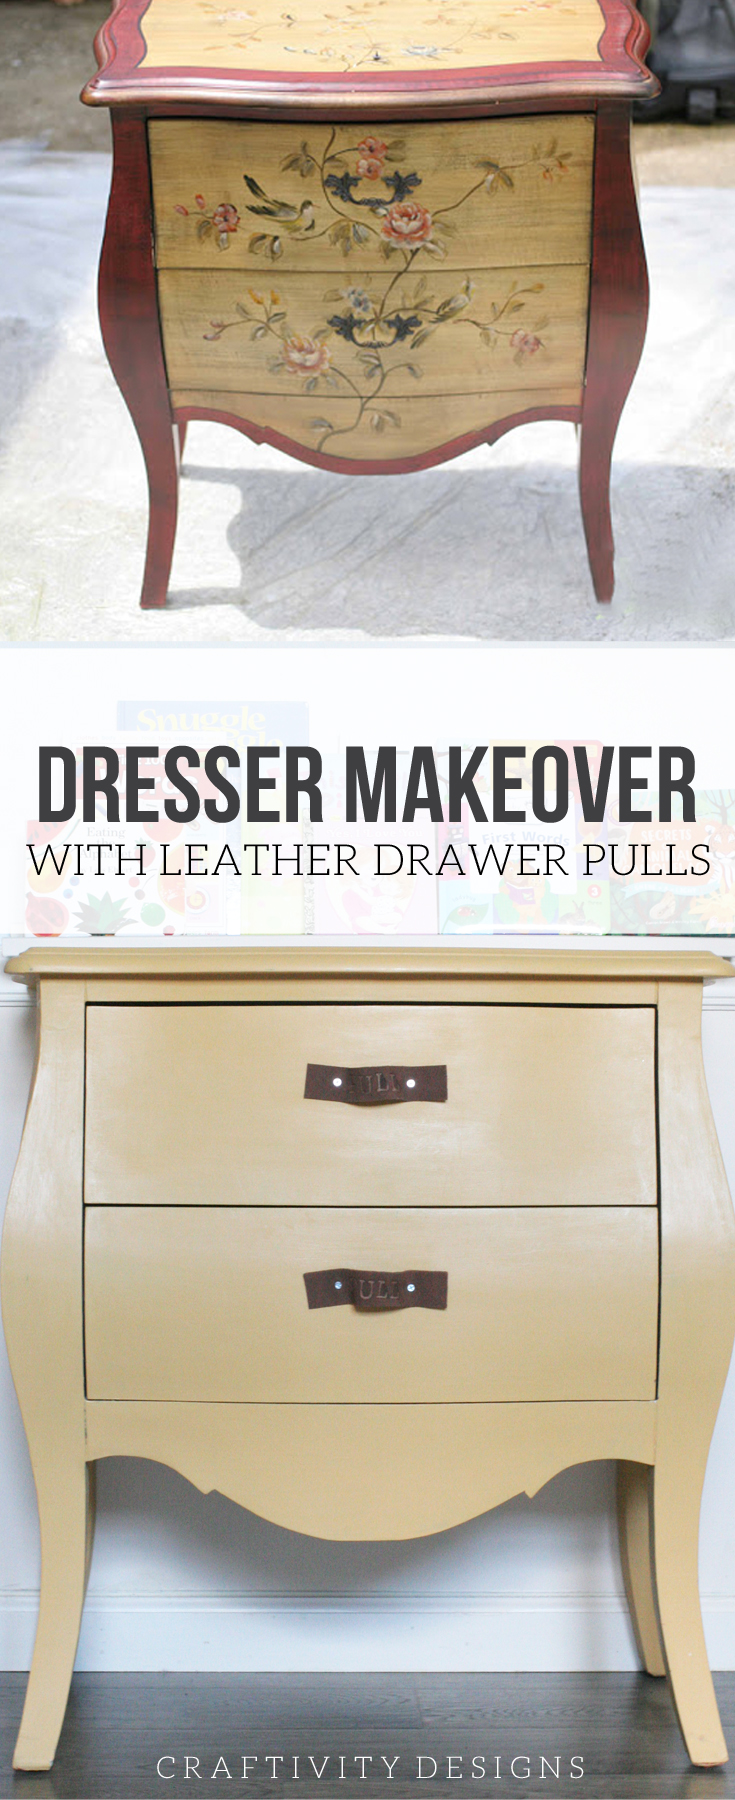 A small dresser for a boys bedroom in ASCP Arles with DIY Leather Drawer Pulls. Click through for the full tutorial.